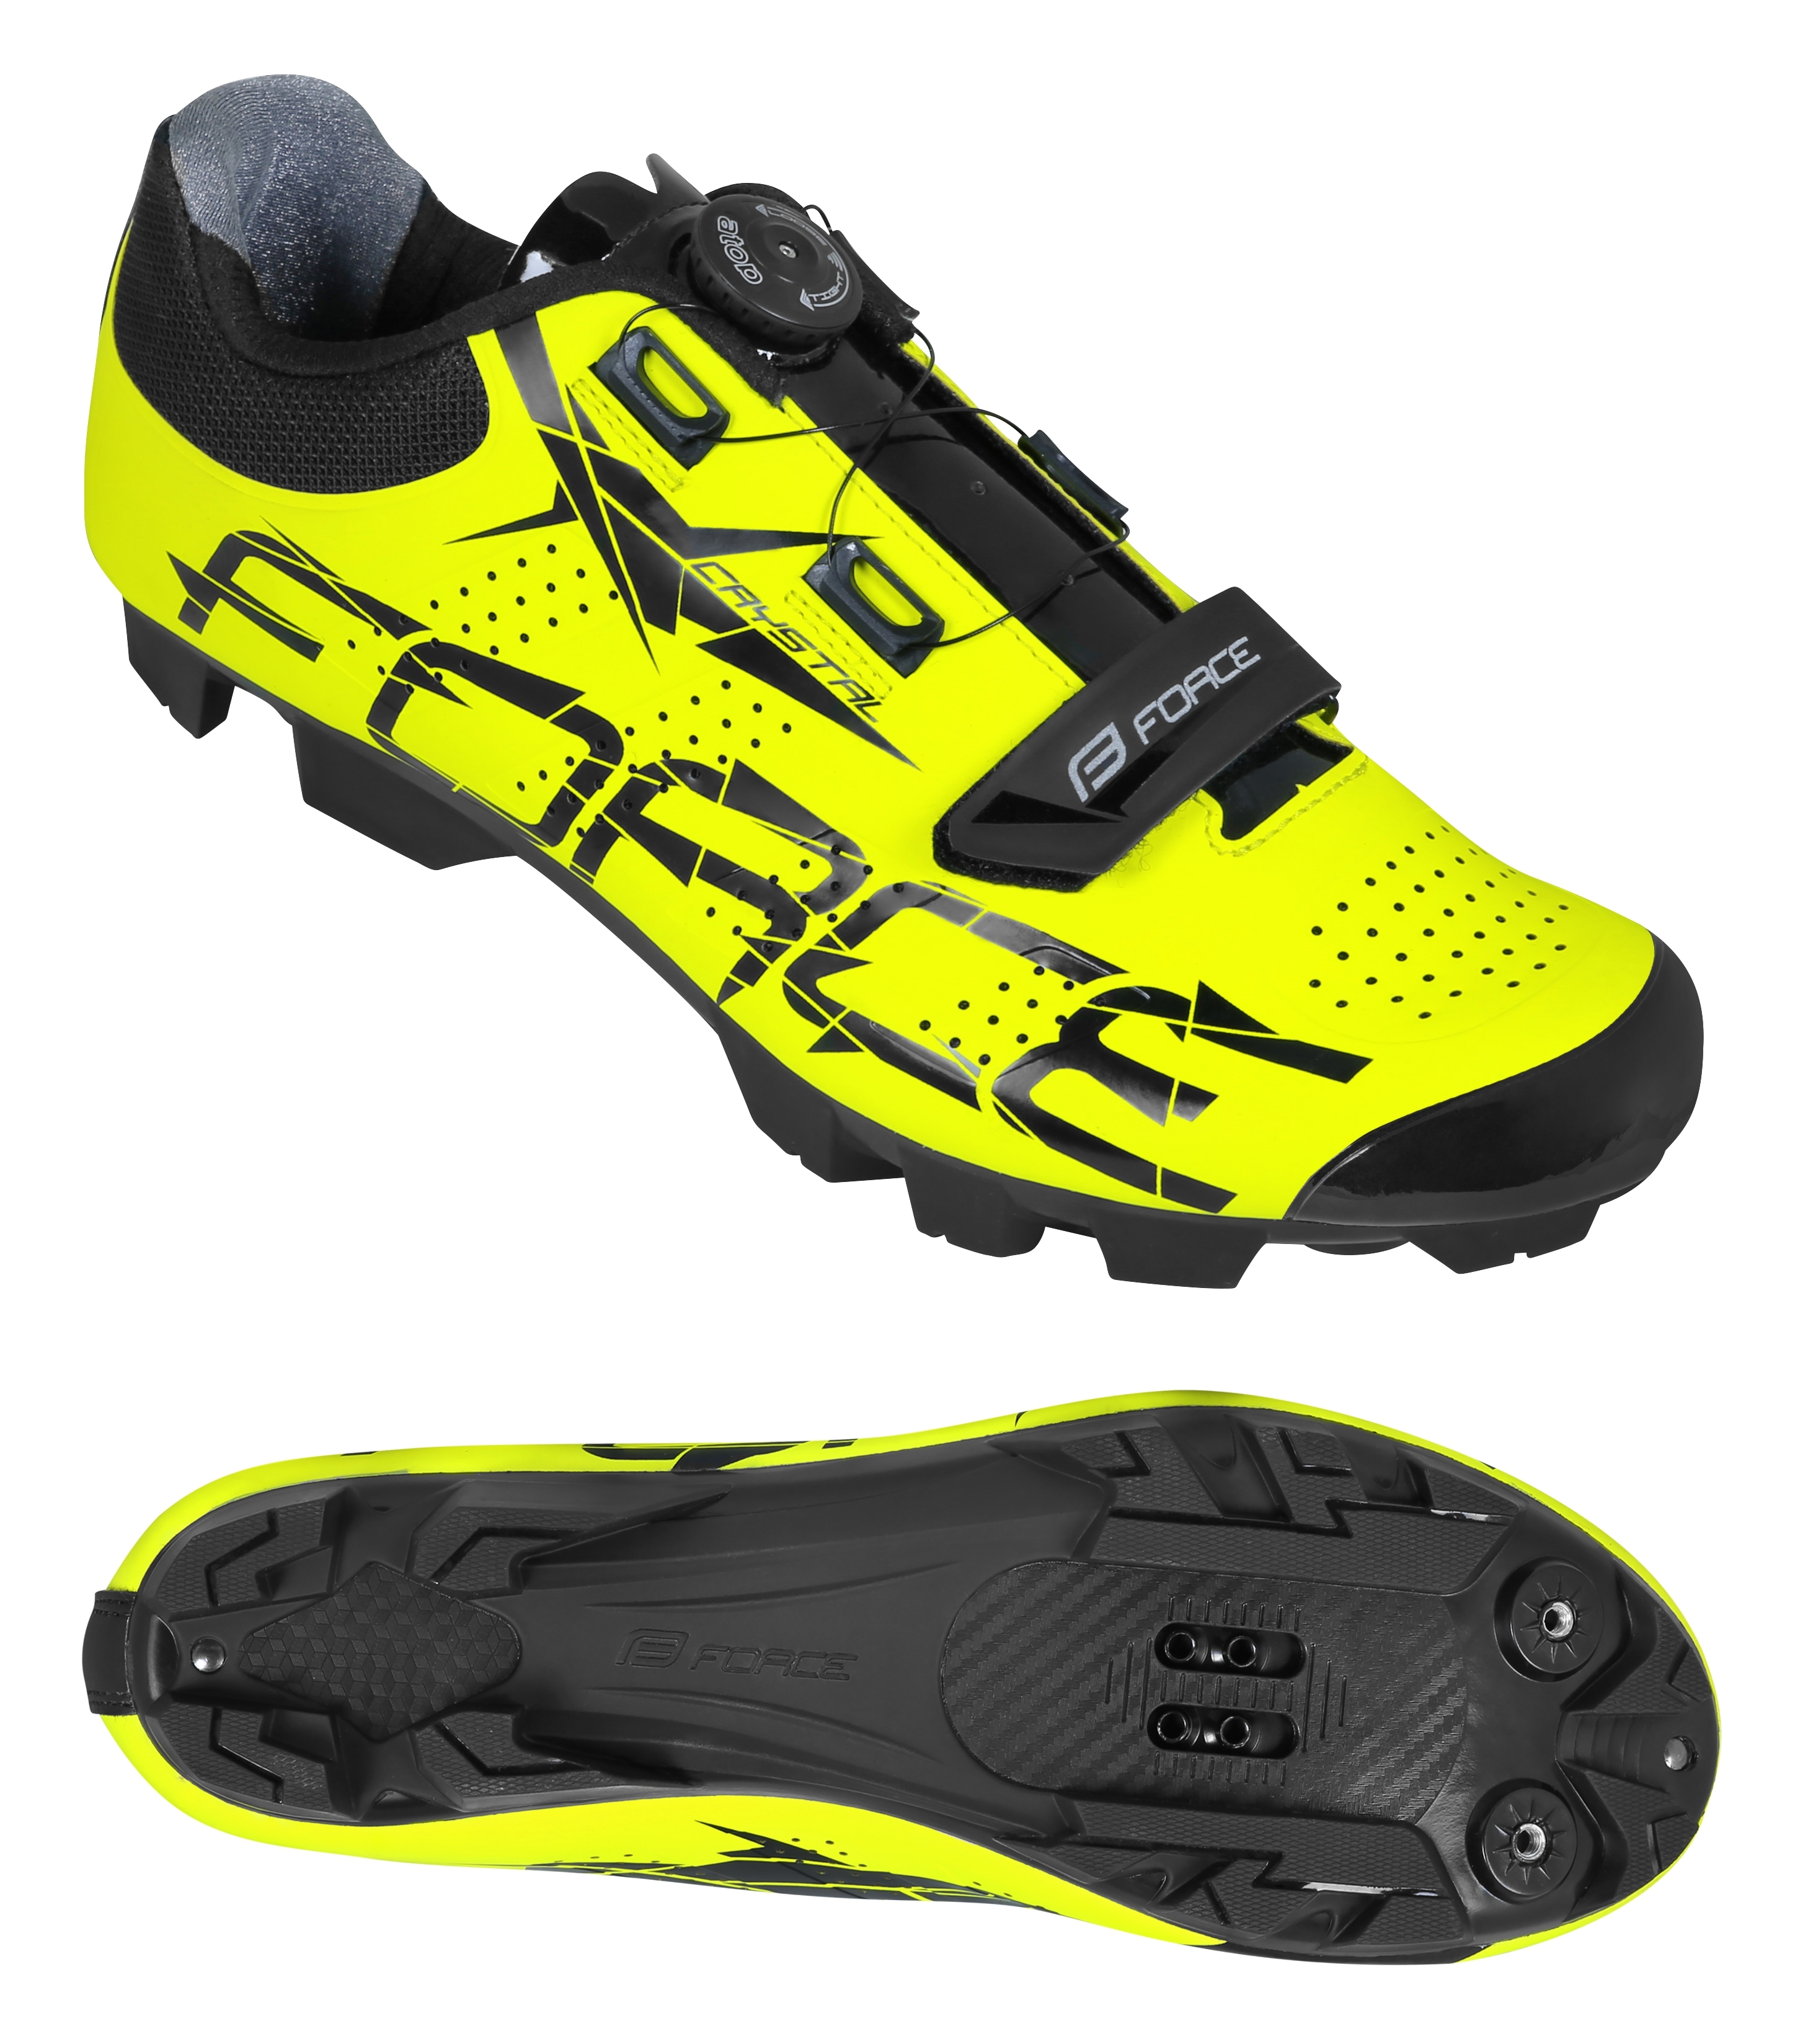 Tretry FORCE MTB CRYSTAL vel. 44, fluo